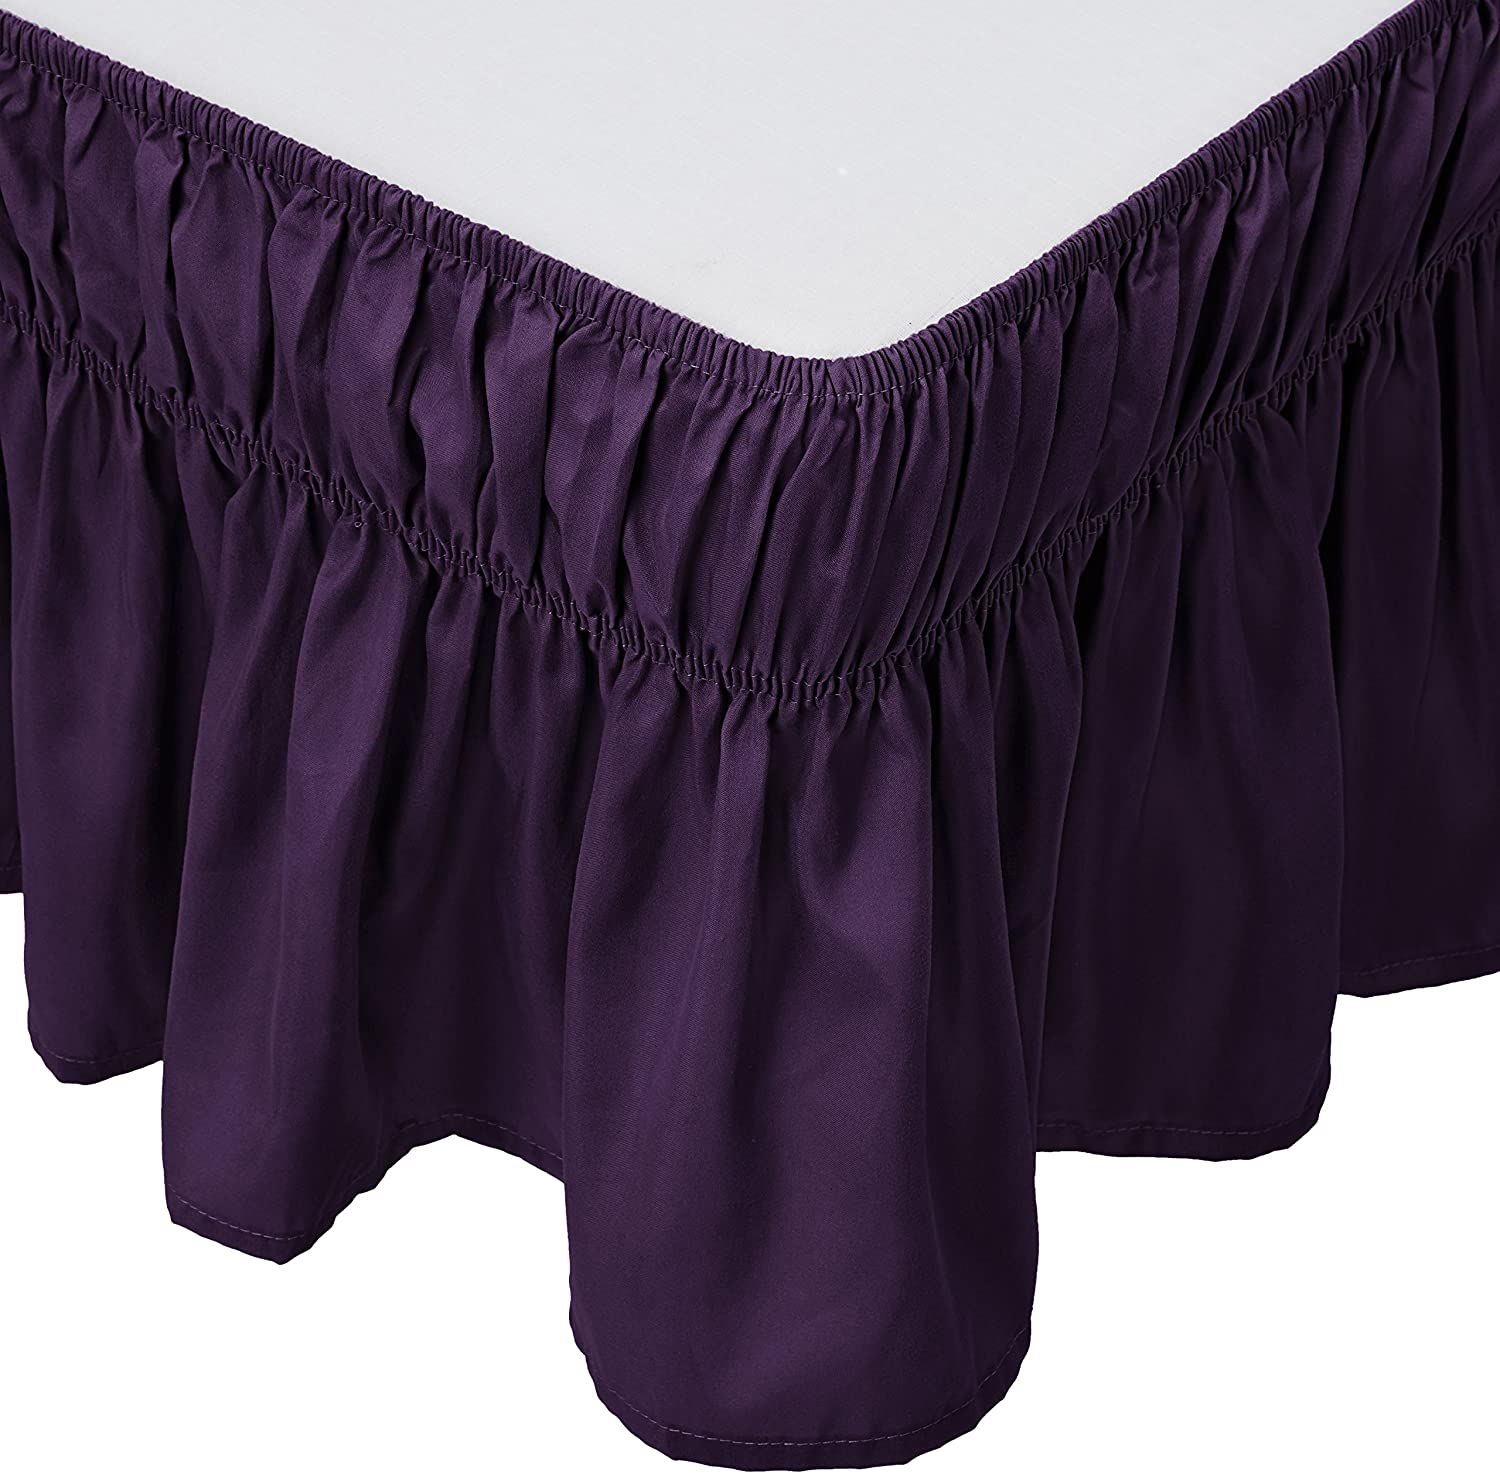 Mk Collection Wrap Around Style Easy Fit Elastic Bed Ruffles Bed-Skirt Queen-king Solid Dark Purple New